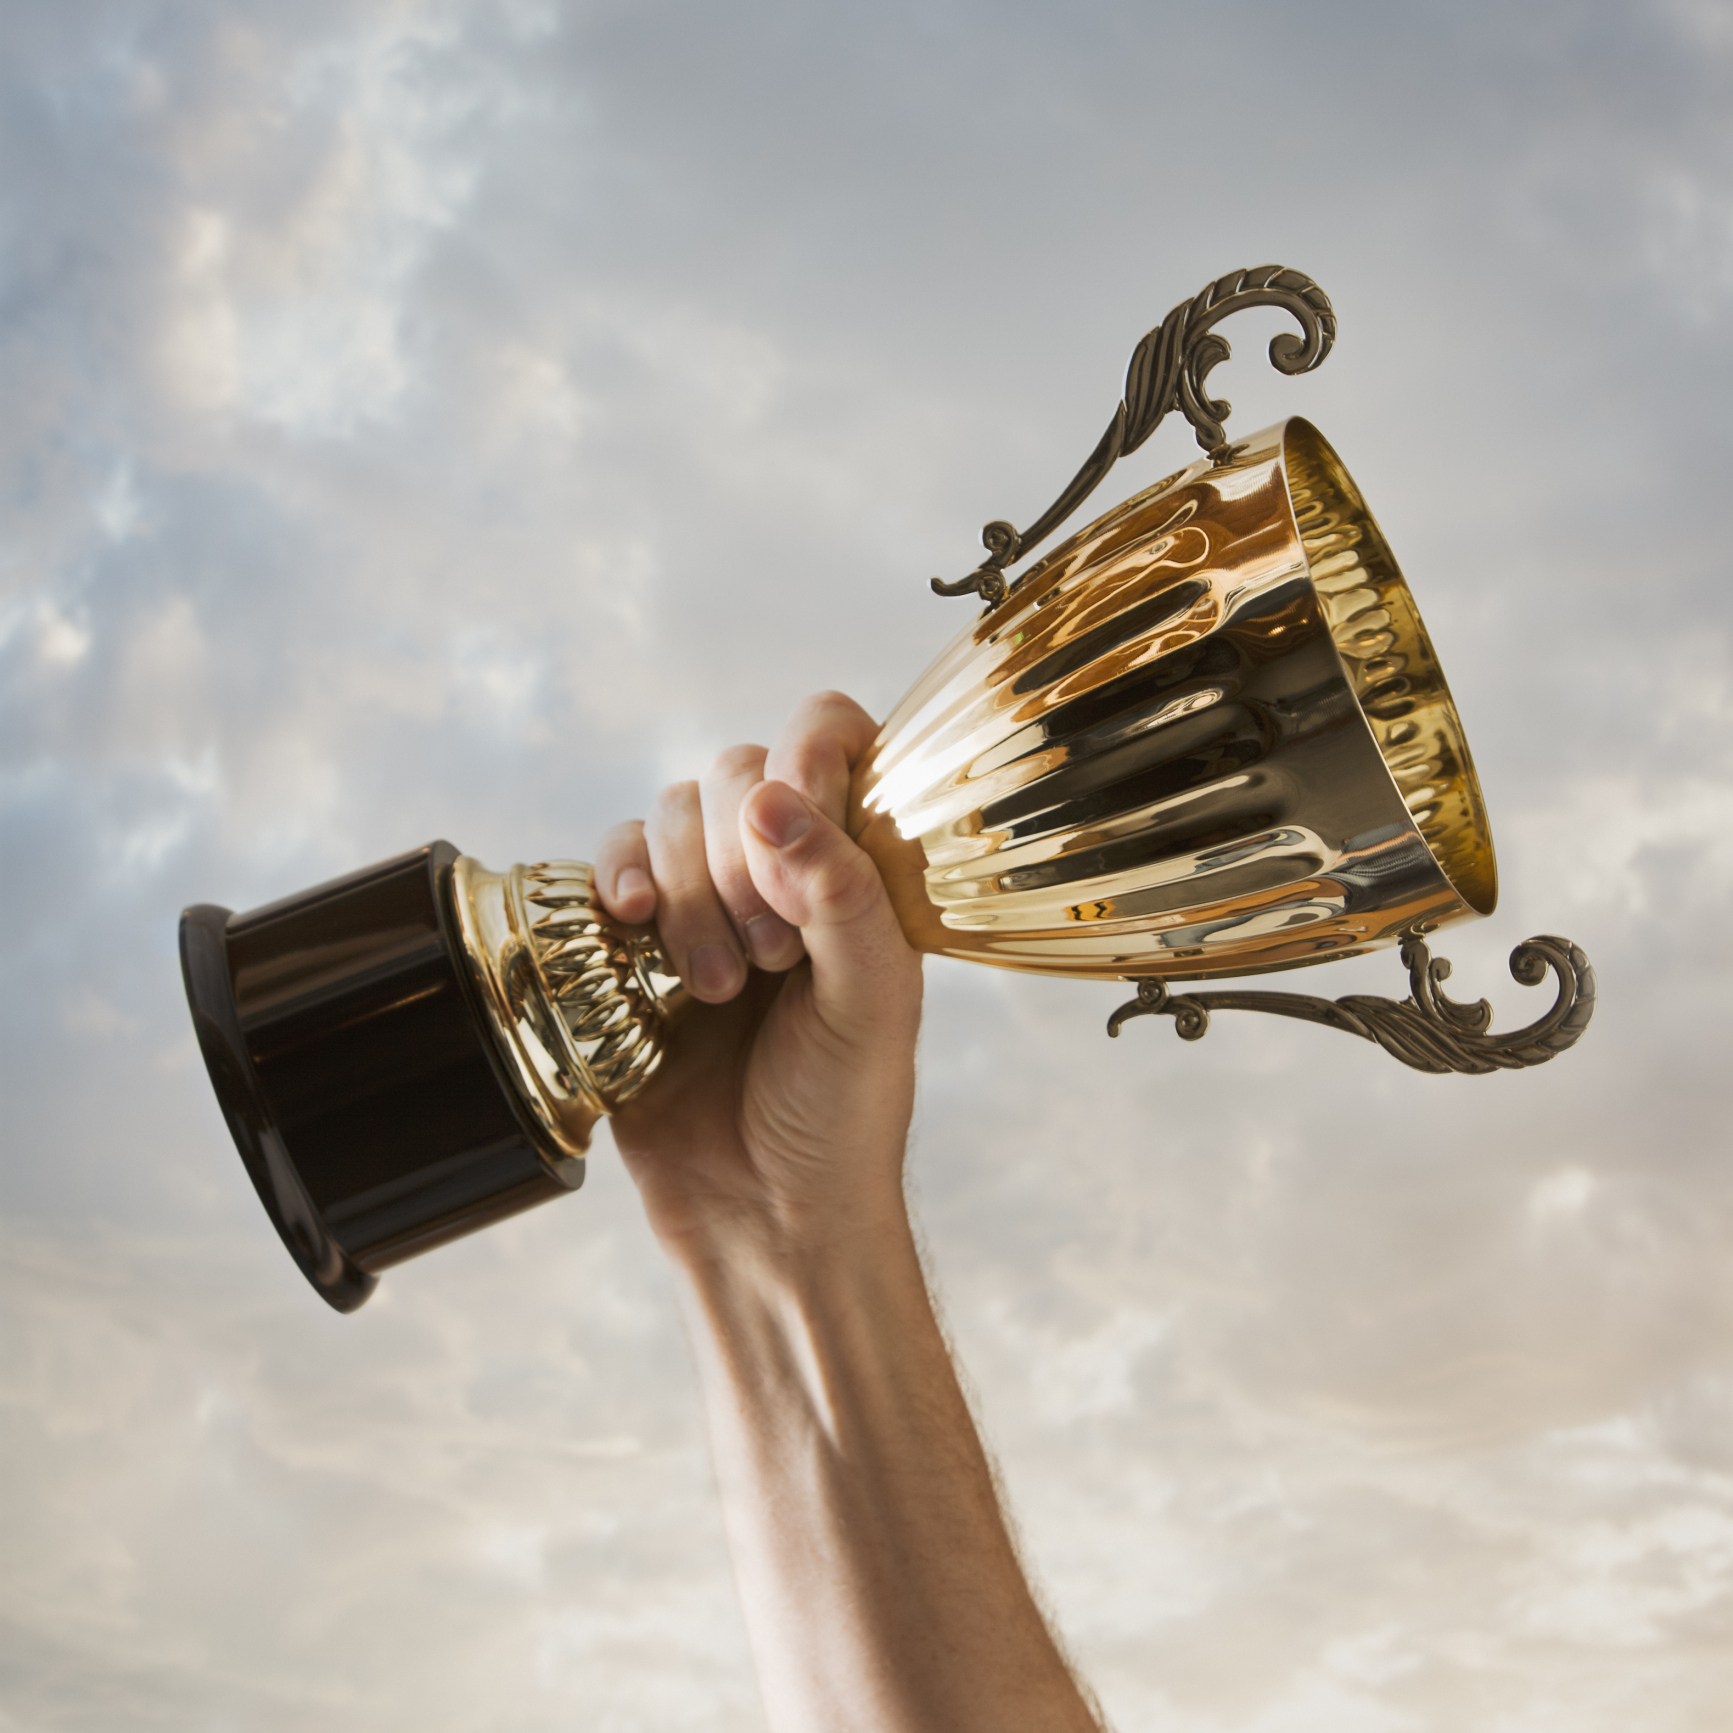 Why I Hate Participation Trophies Participation Awards